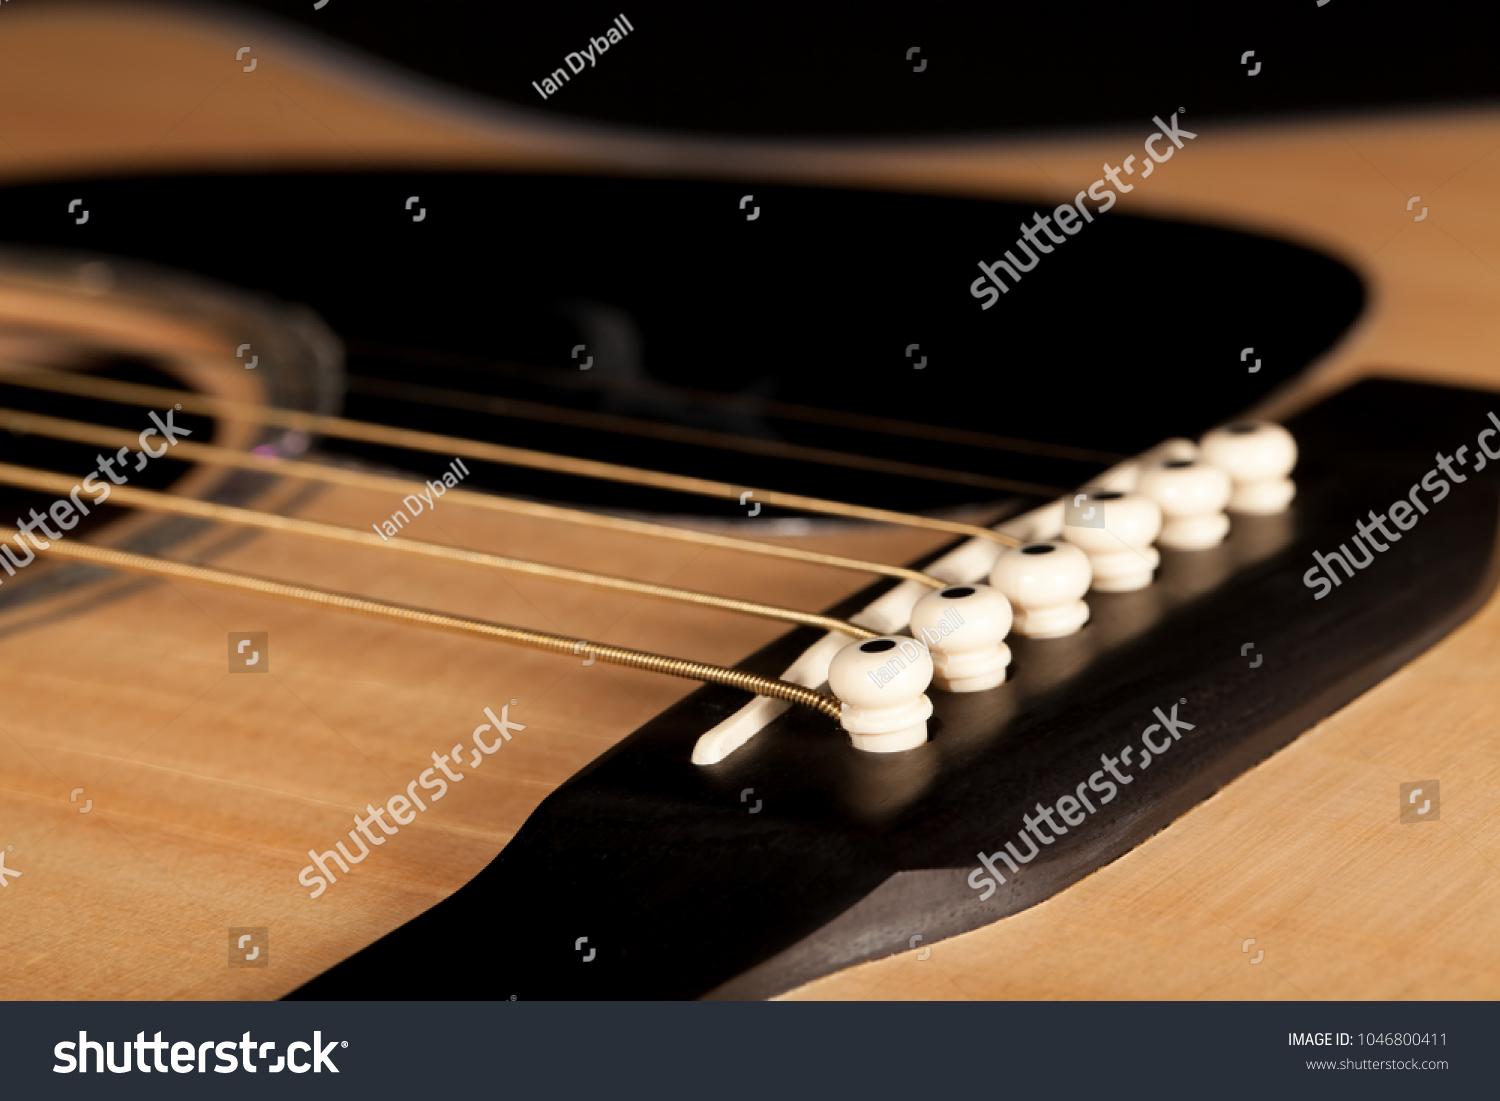 Acoustic Guitar Blackwood Bridge Pin Pegs Stock Photo (Royalty Free ...